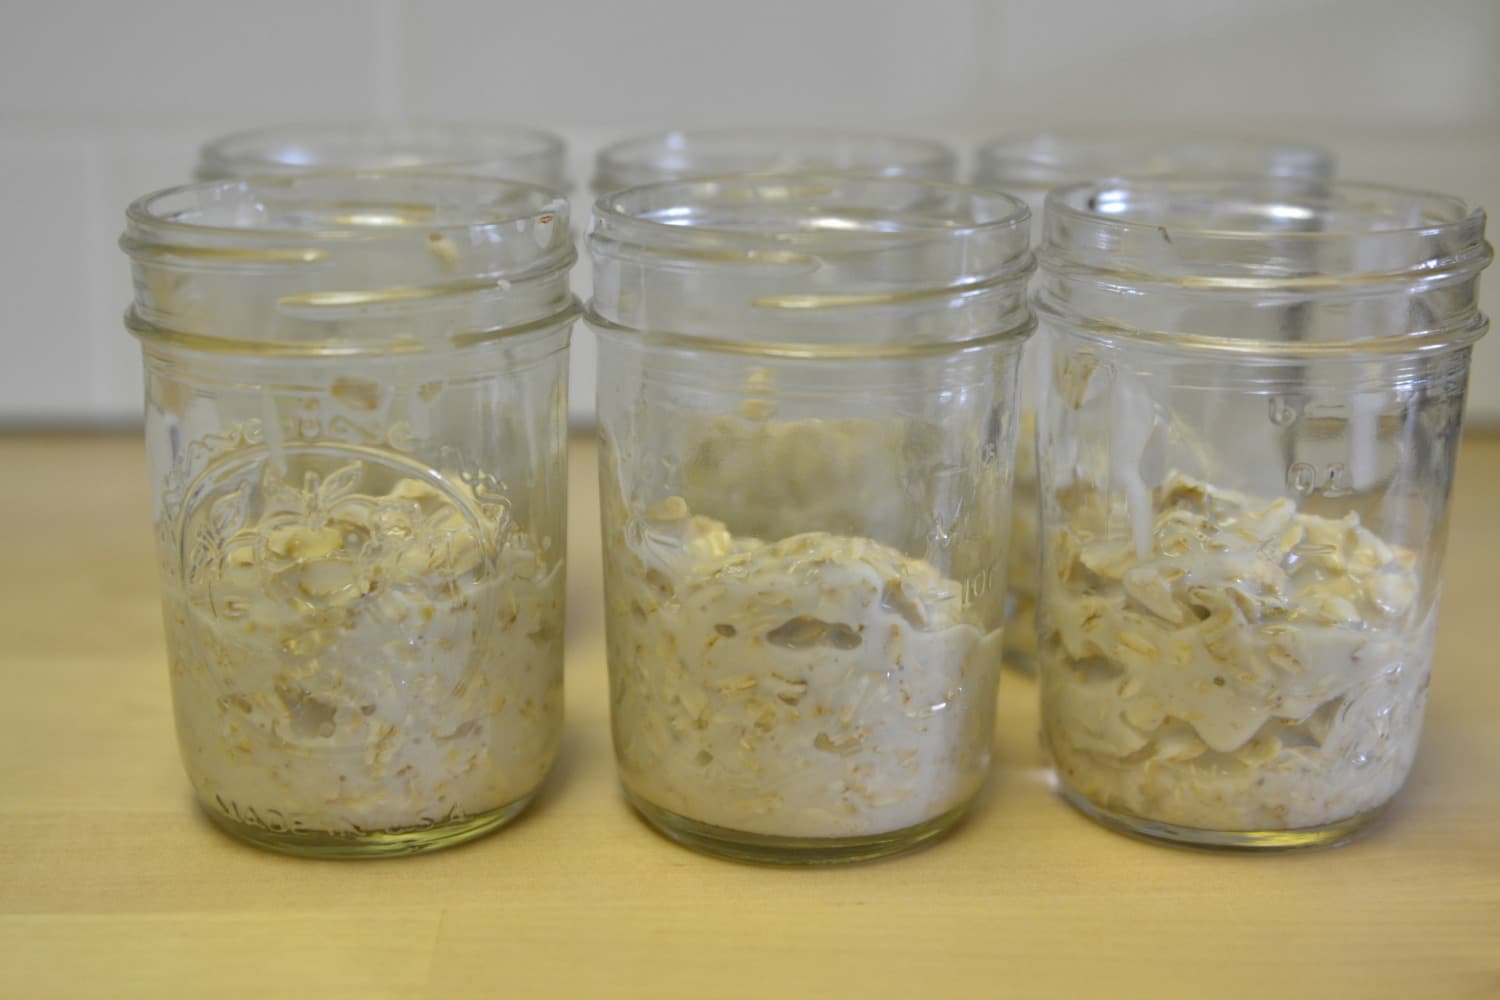 Spoon oatmeal and yogurt mixture into mason jars